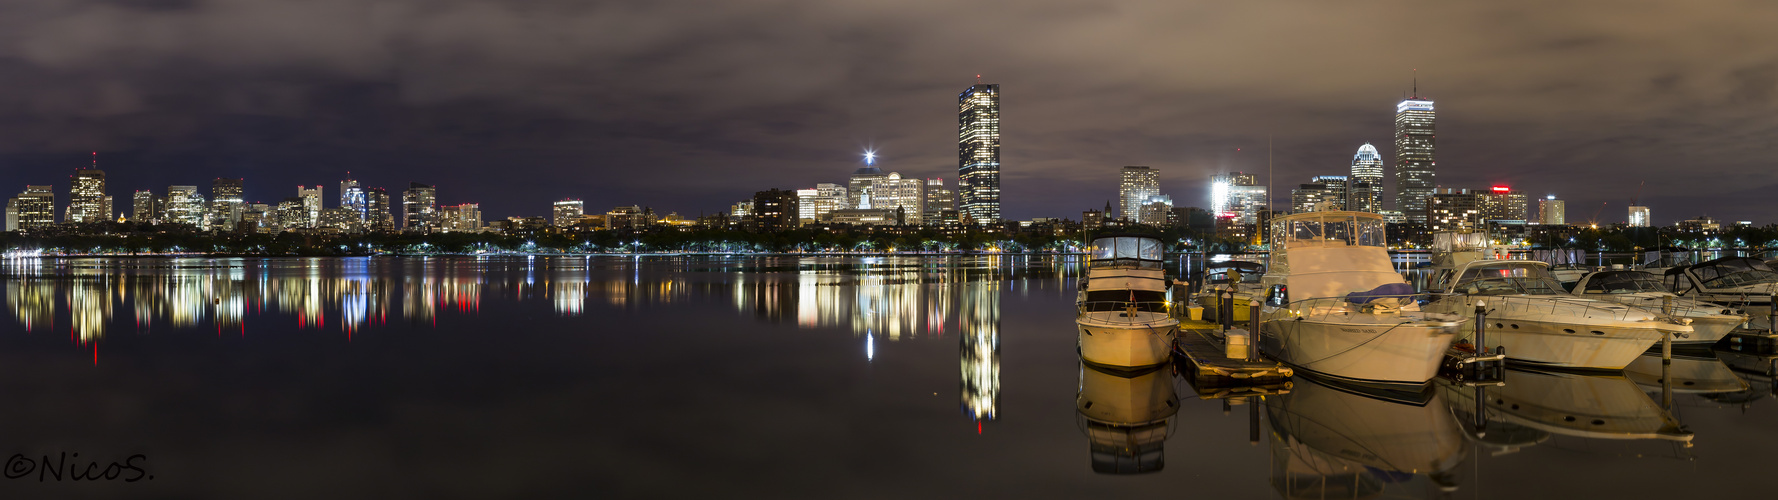 Boston Charles River view